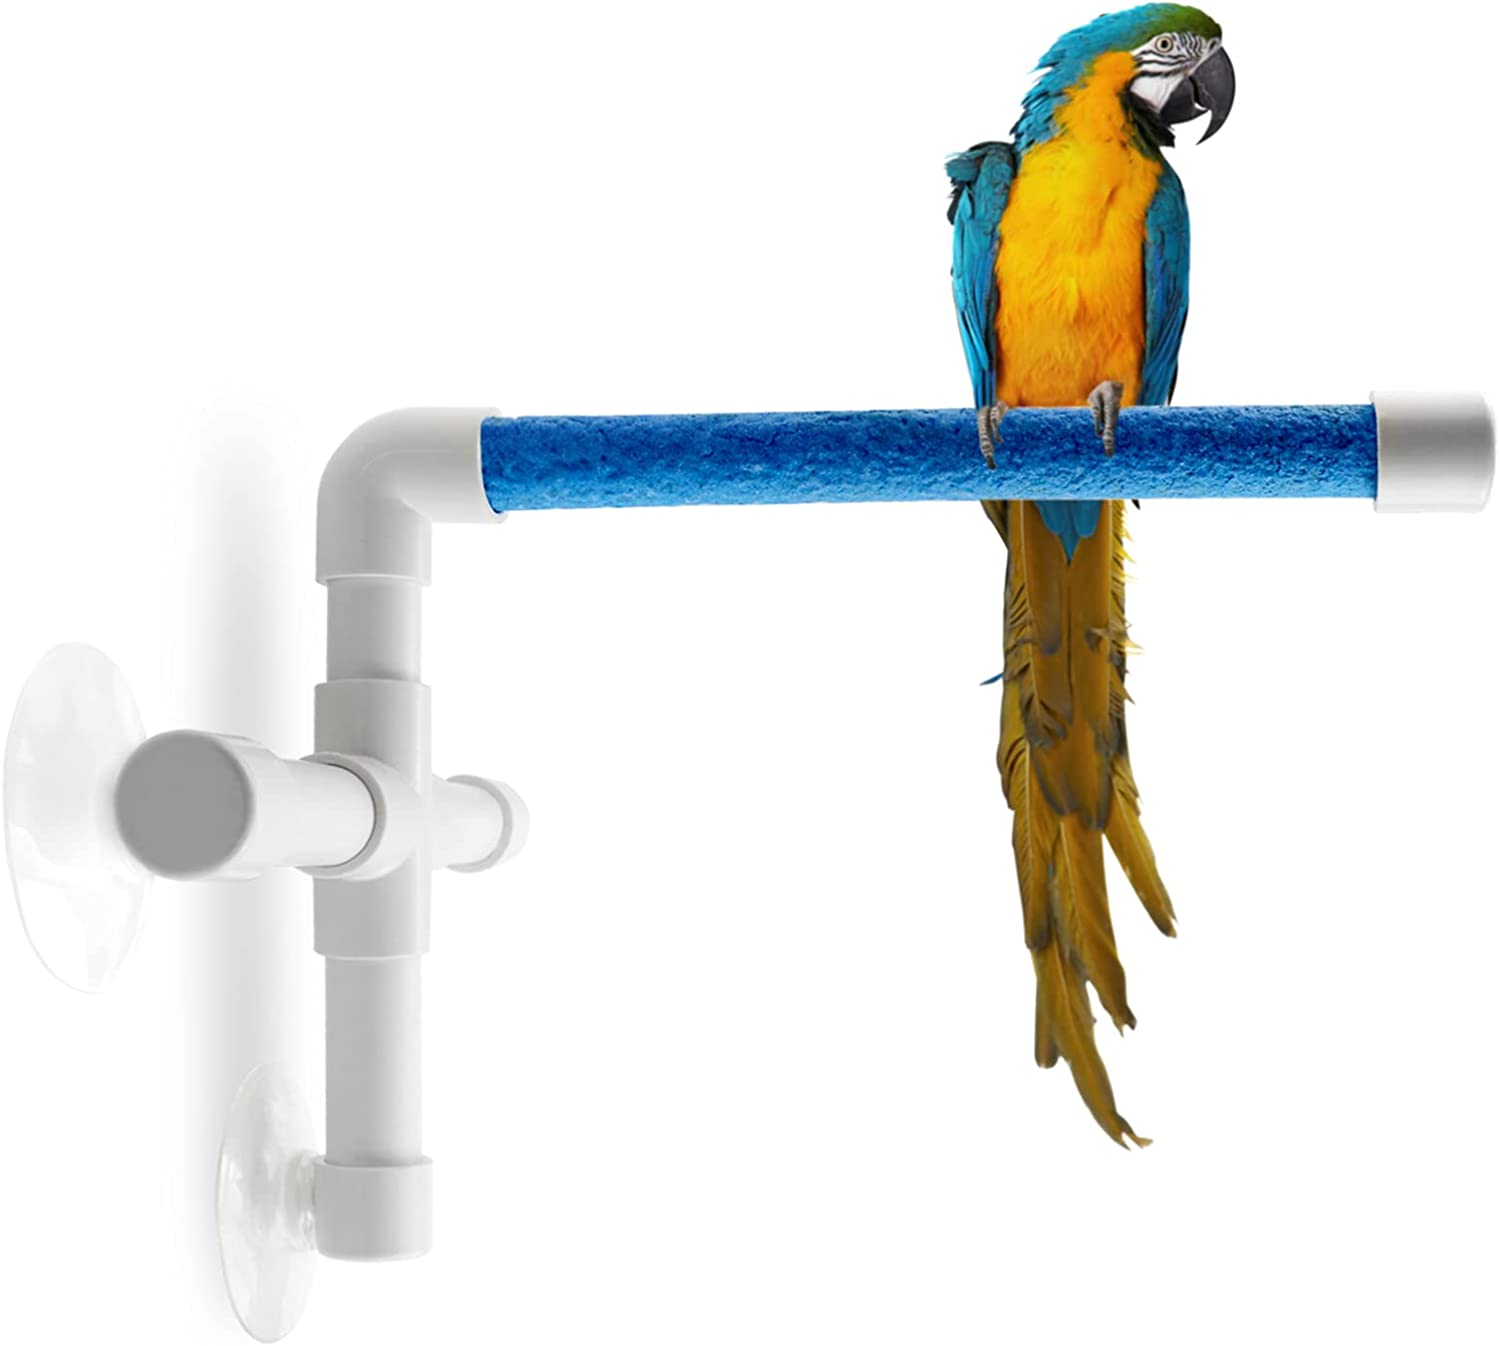 CZWESTC Bird Large discharge sale Perch with Suction Cup Pe Window Shower and Ranking TOP20 Parrot